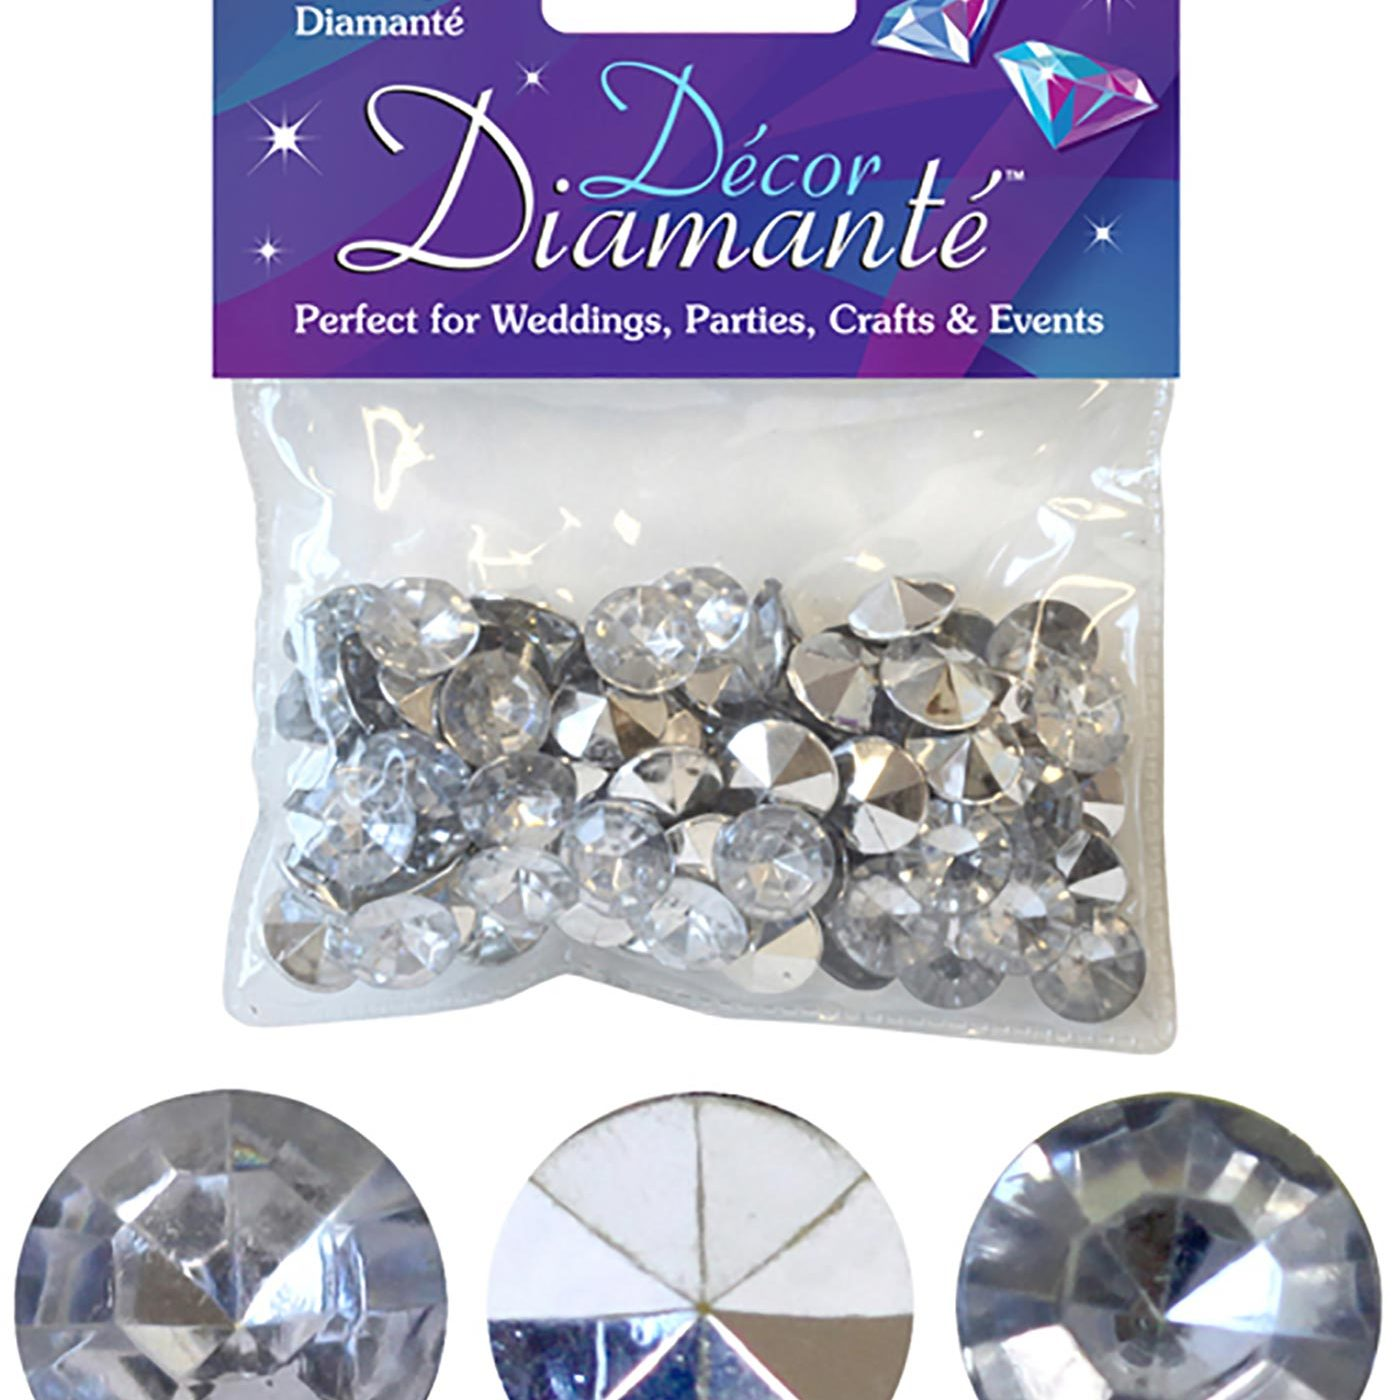 12mm Décor Diamante Diamonds 28g Silver No.24 (clear with mirror back)